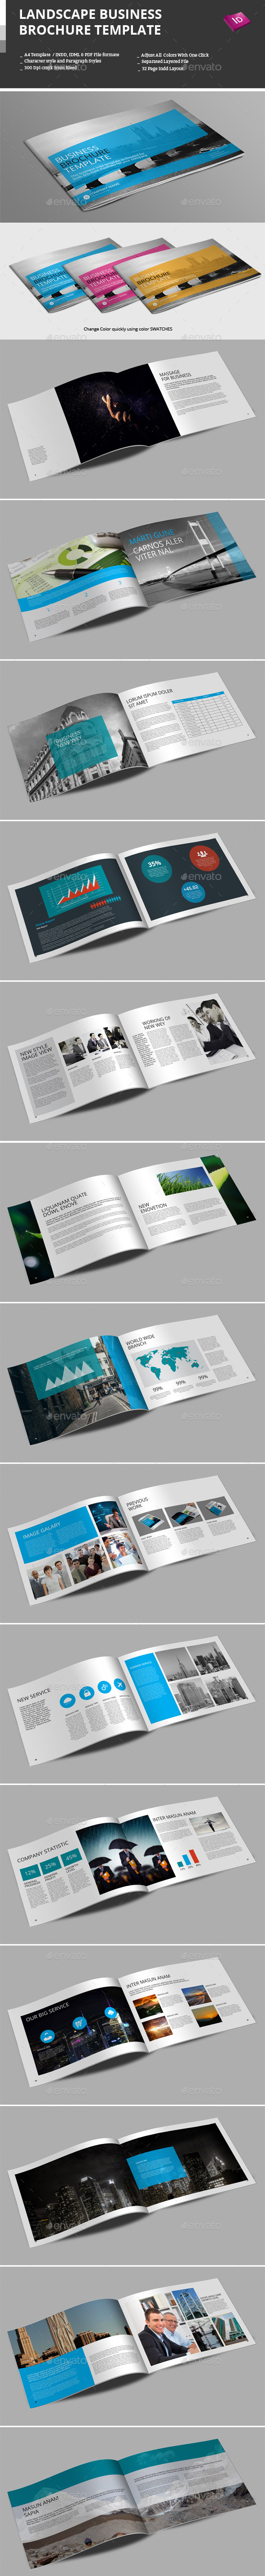 GraphicRiver Landscape Business Brochure Template 9475204